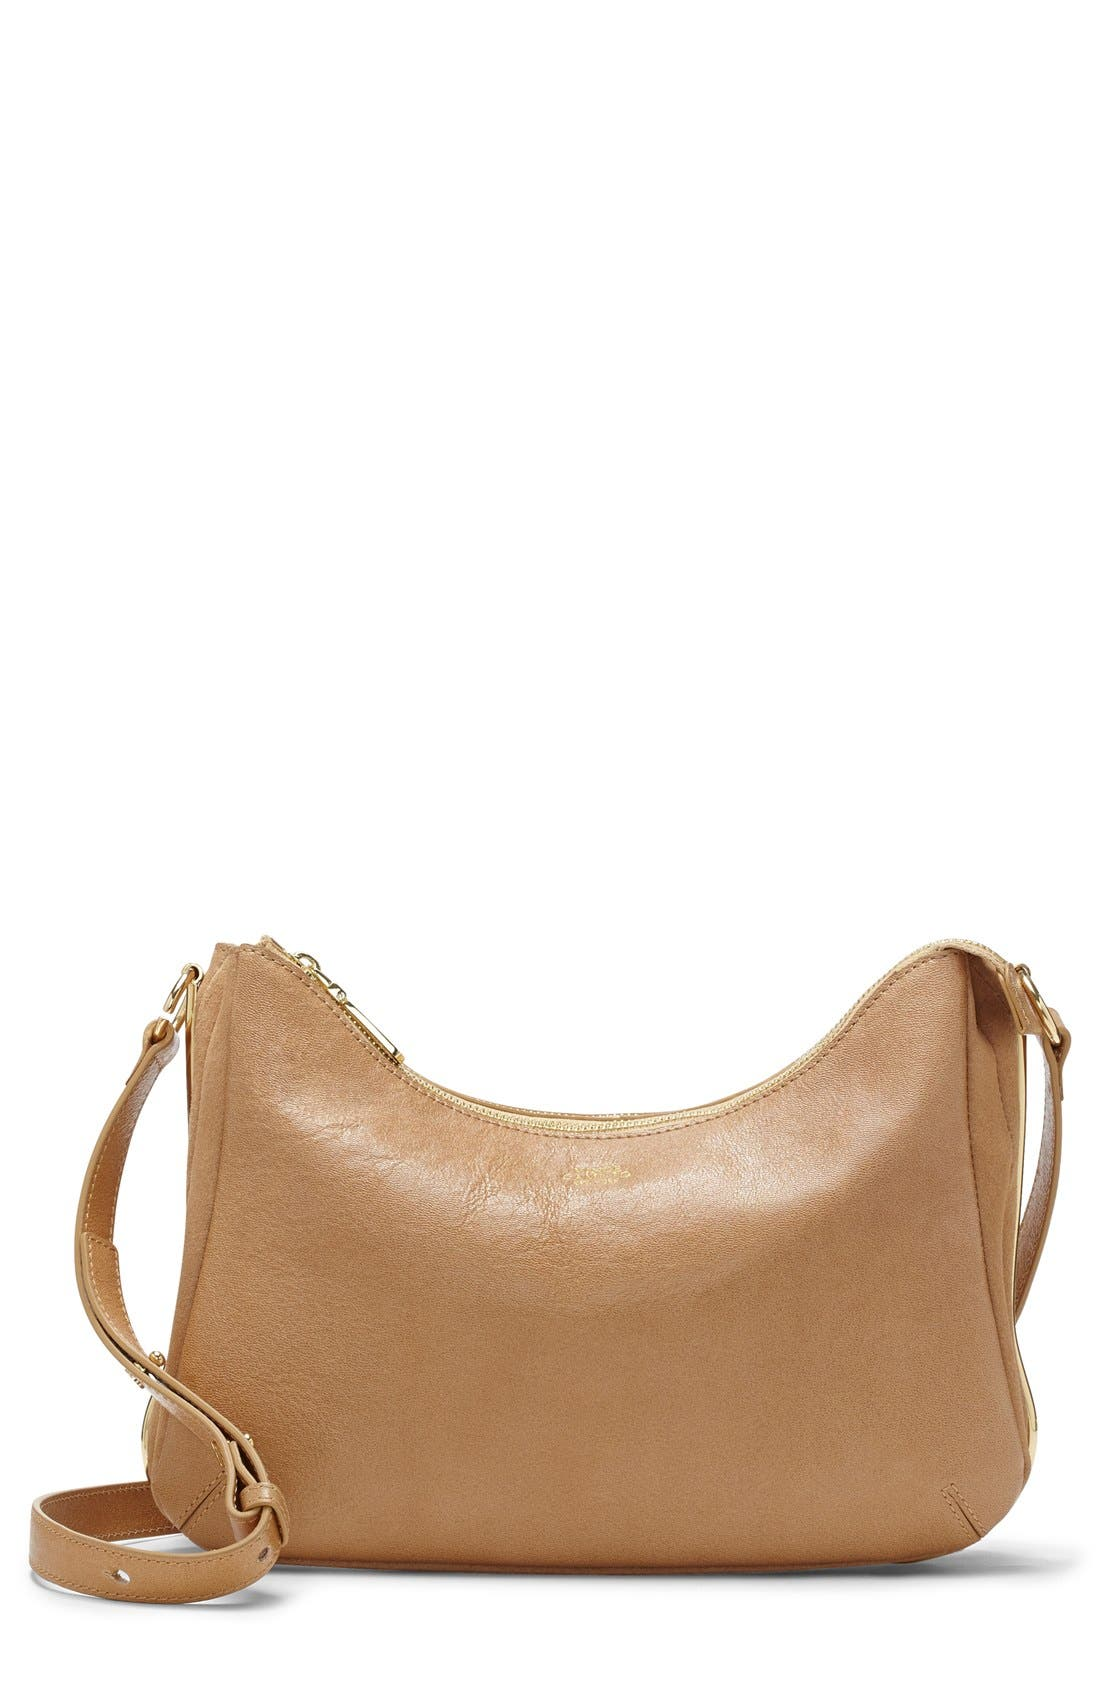 Alternate Image 1 Selected - Vince Camuto 'Sadie' Leather Crossbody Bag